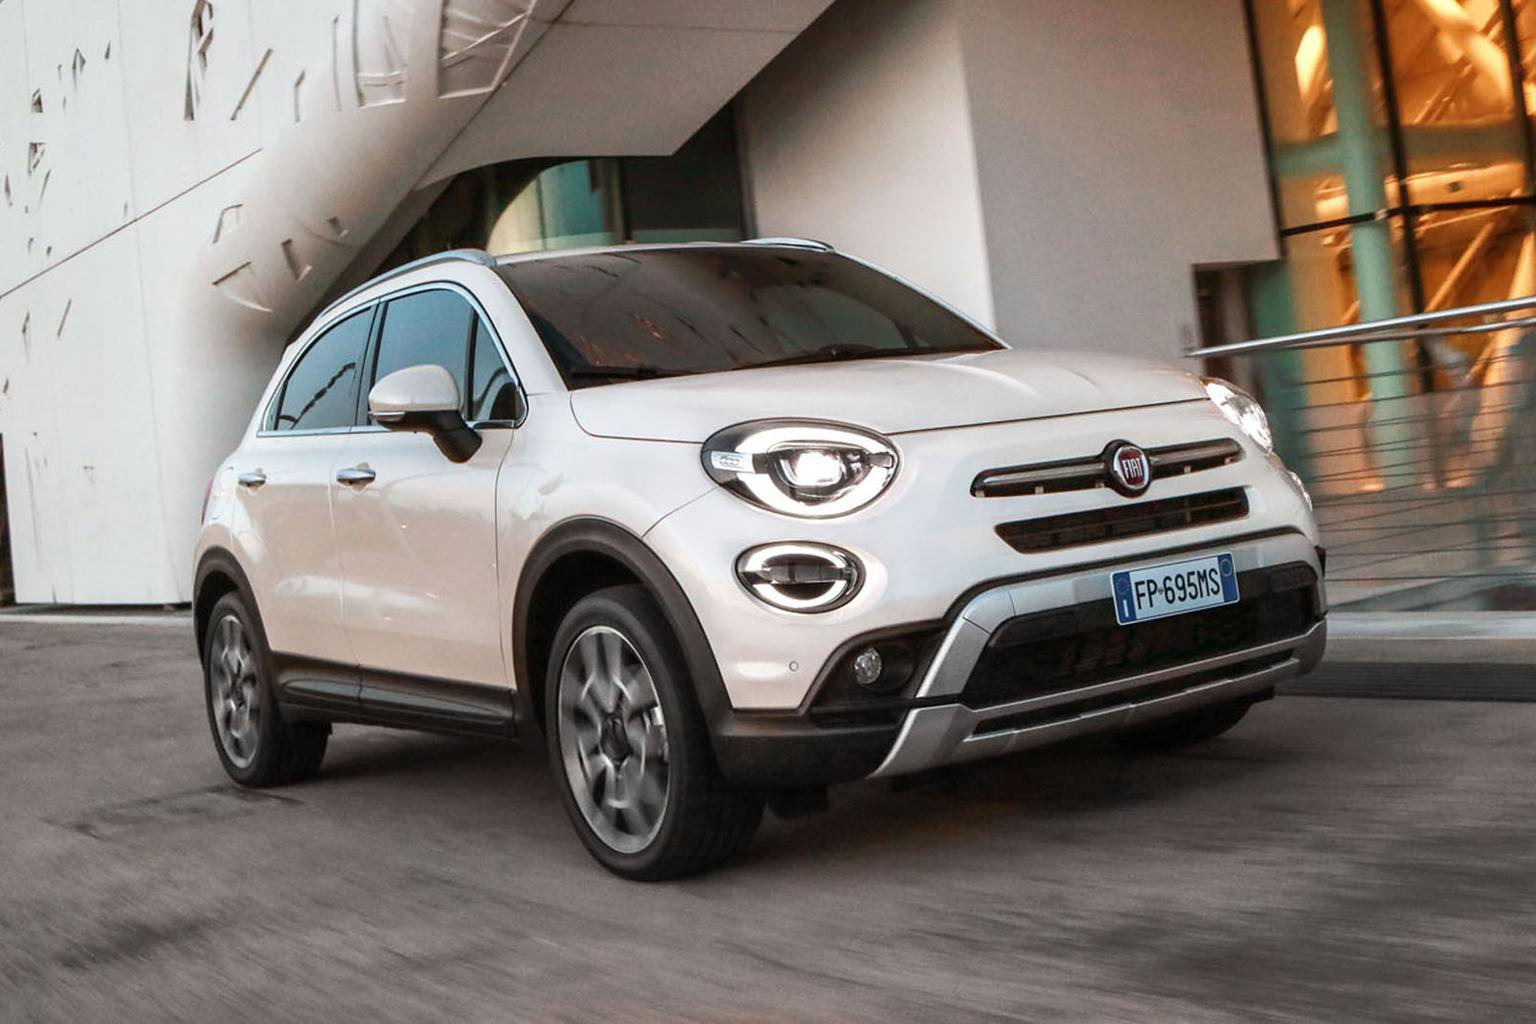 2018 Fiat 500X review - price, specs and release date